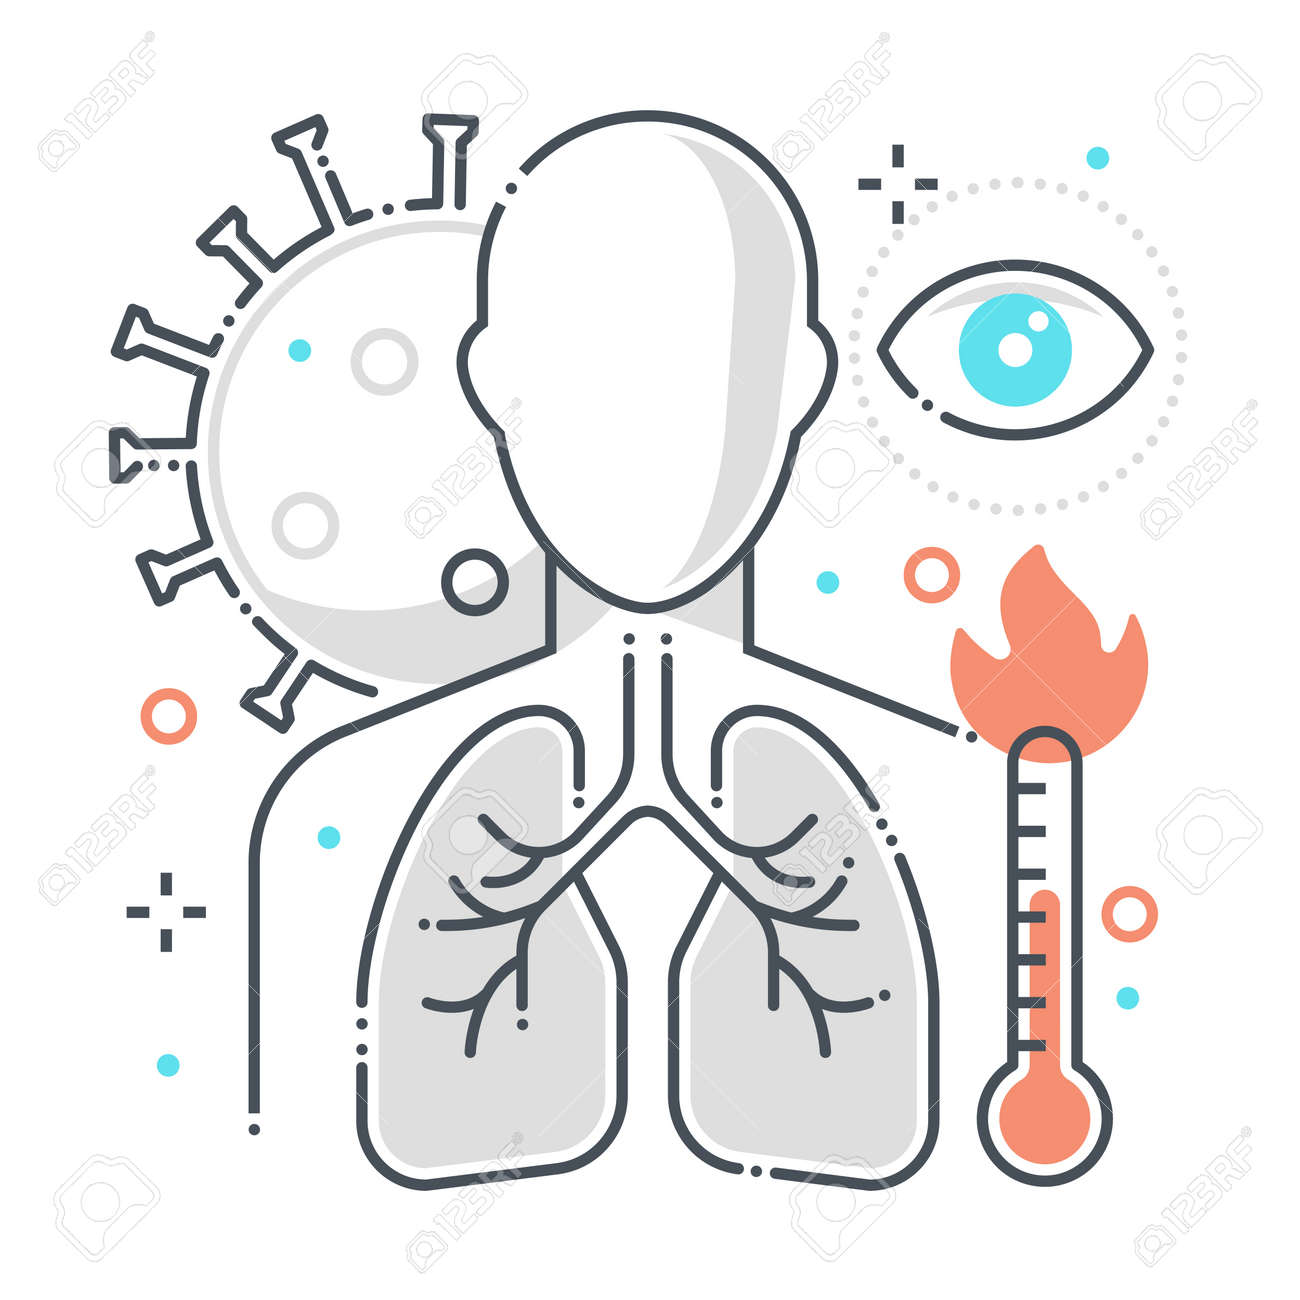 Symptoms related color line vector icon, illustration. The icon is about reparatory disease, fever, eyes, human, corona virus, contamination, epidemic, lungs. The composition is infinitely scalable. - 163698062